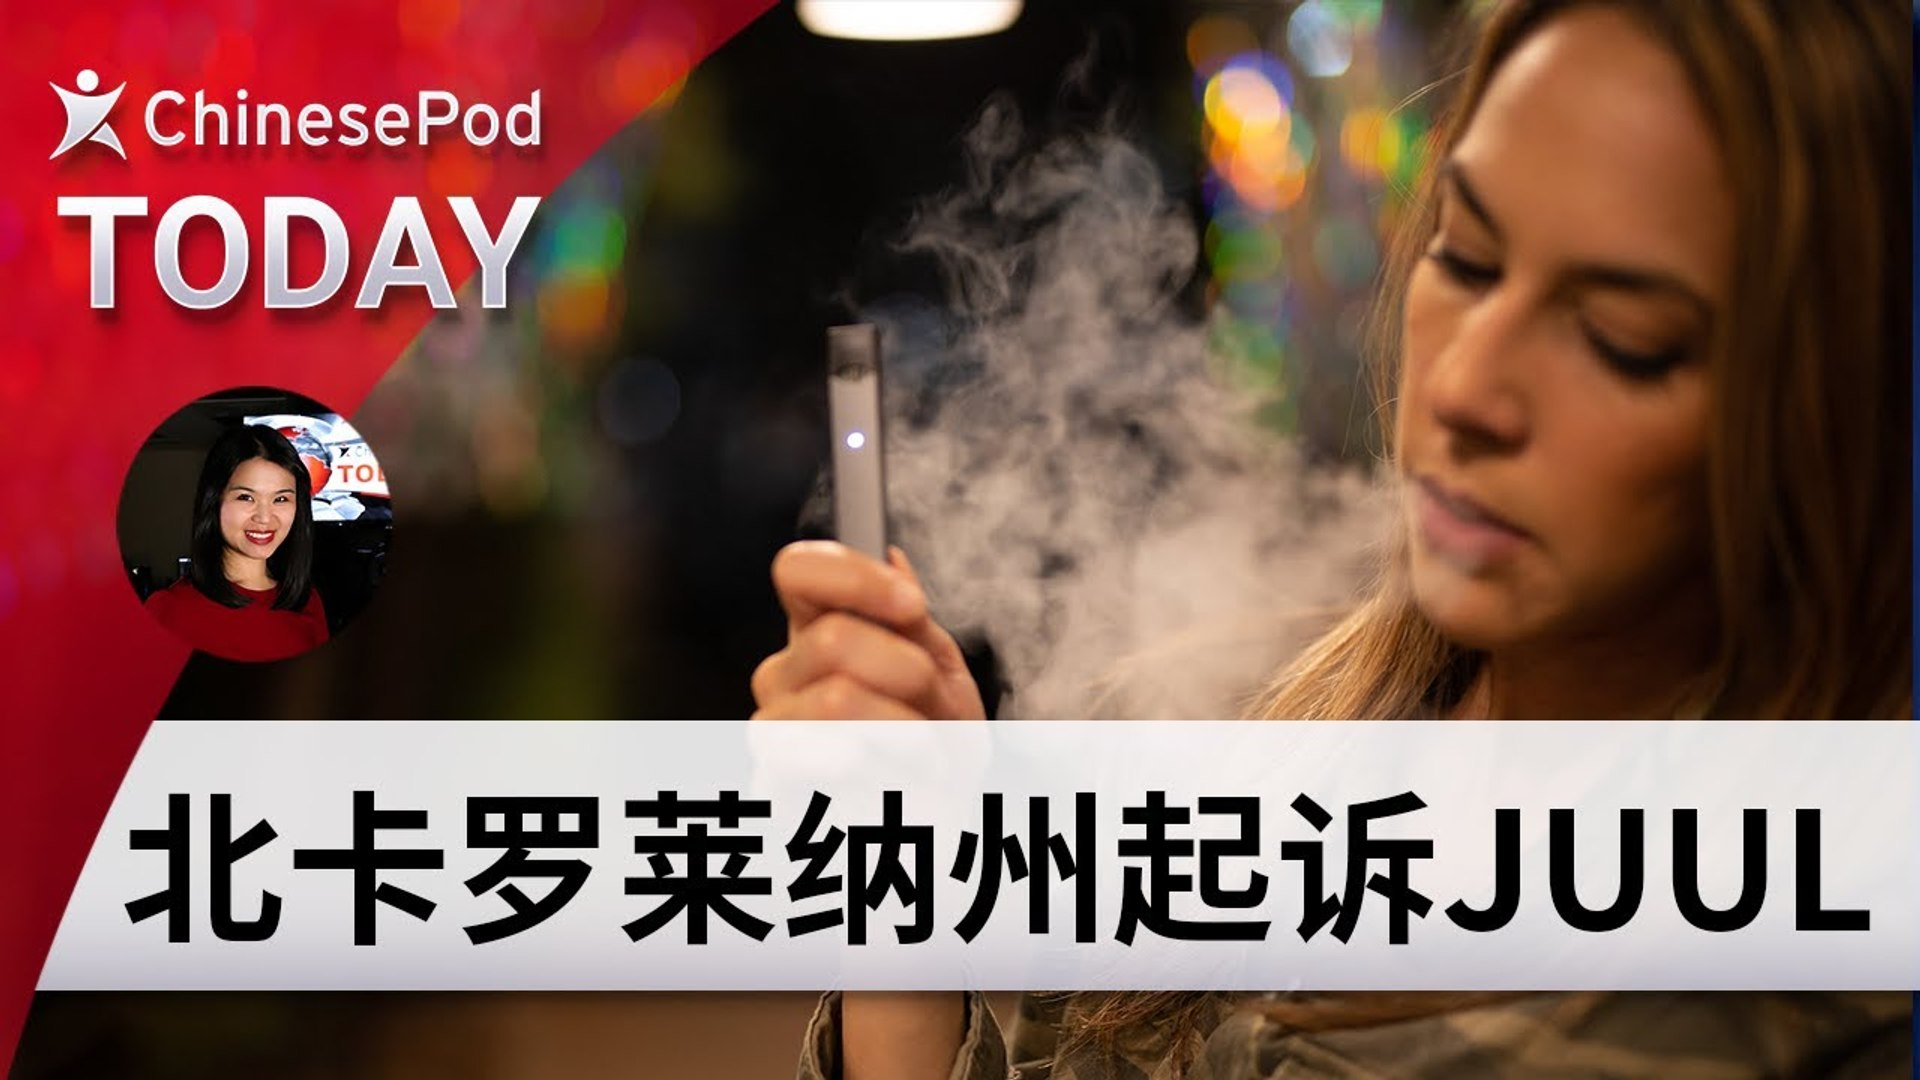 ChinesePod Today: North Carolina Sues Juul, Accuses Company of Targeting Teens (simp. character)